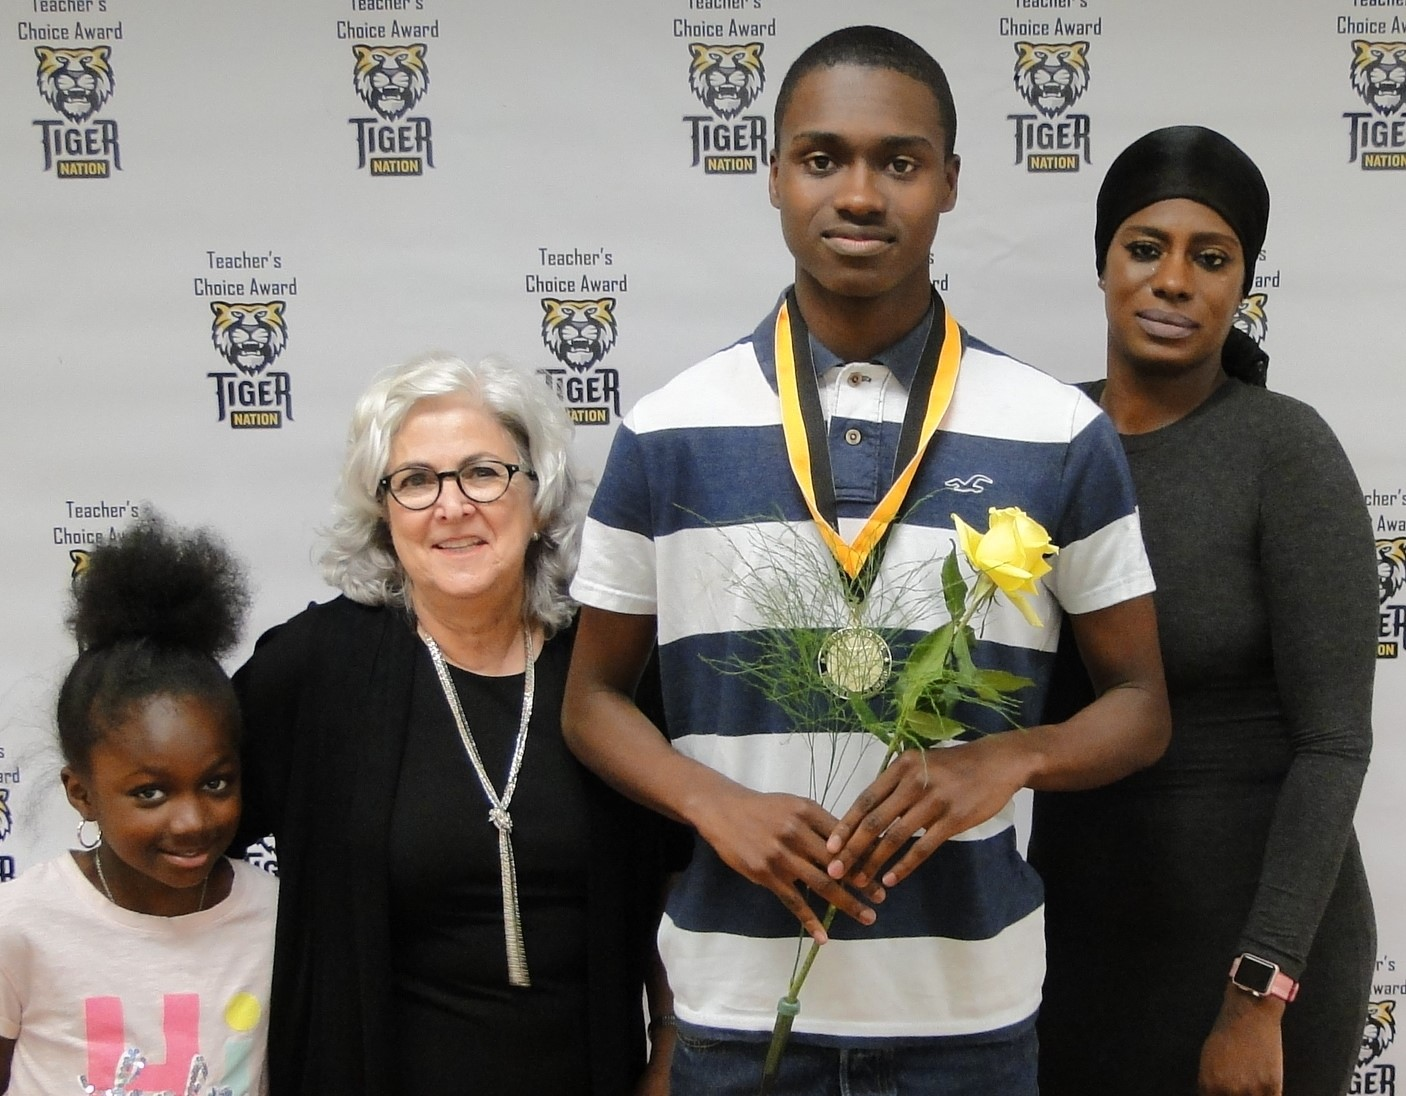 JaRay David recognized by Marcy Joublanc